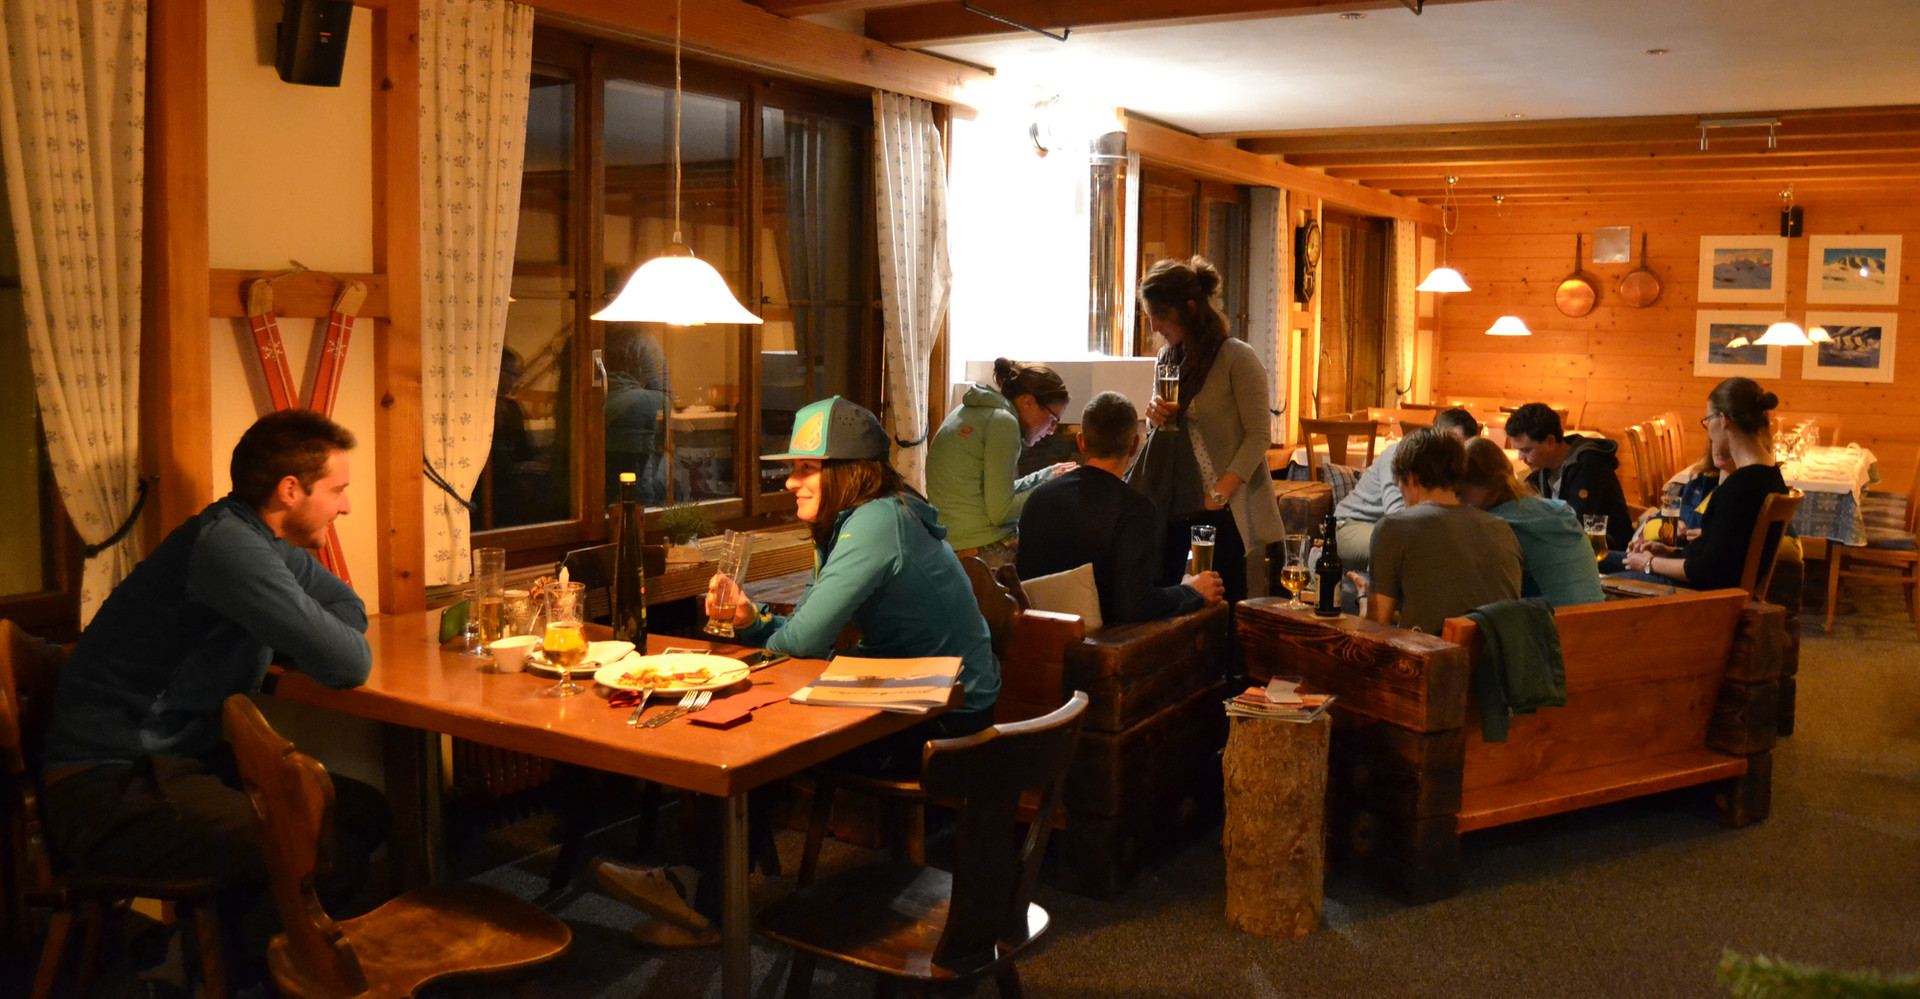 Mountain Lodge Restaurant